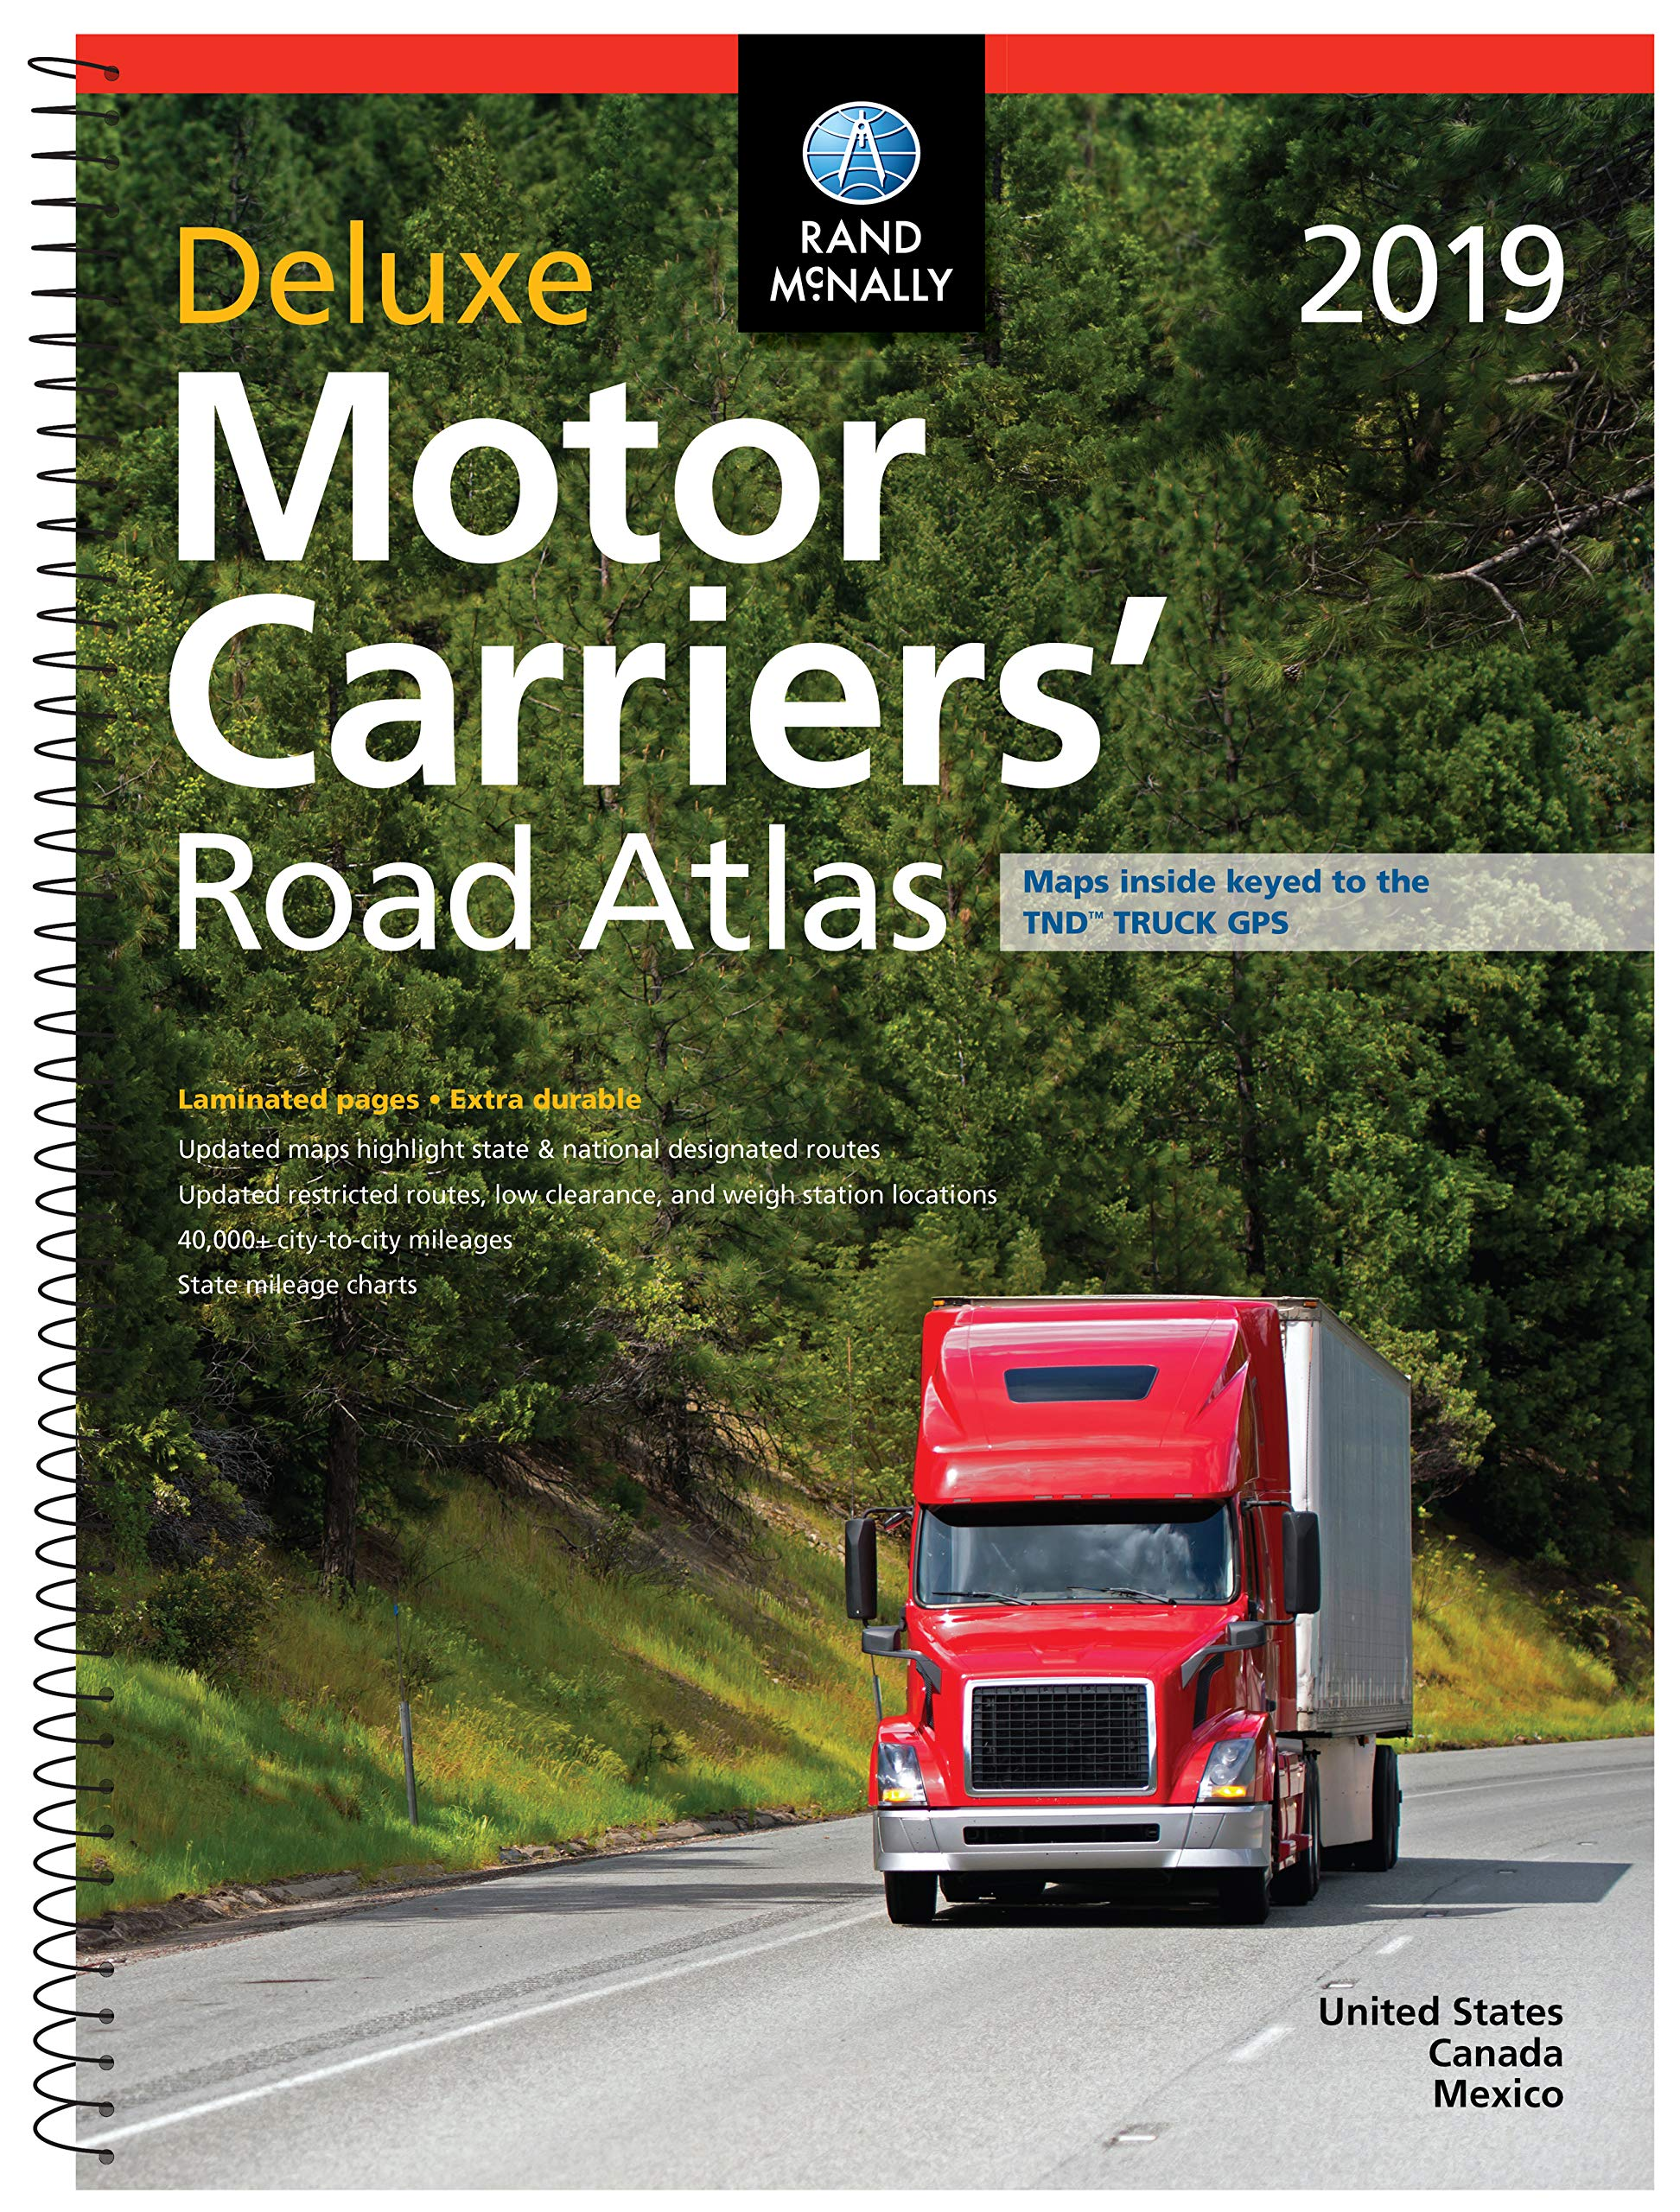 McNally Deluxe Motor Carriers Atlas product image